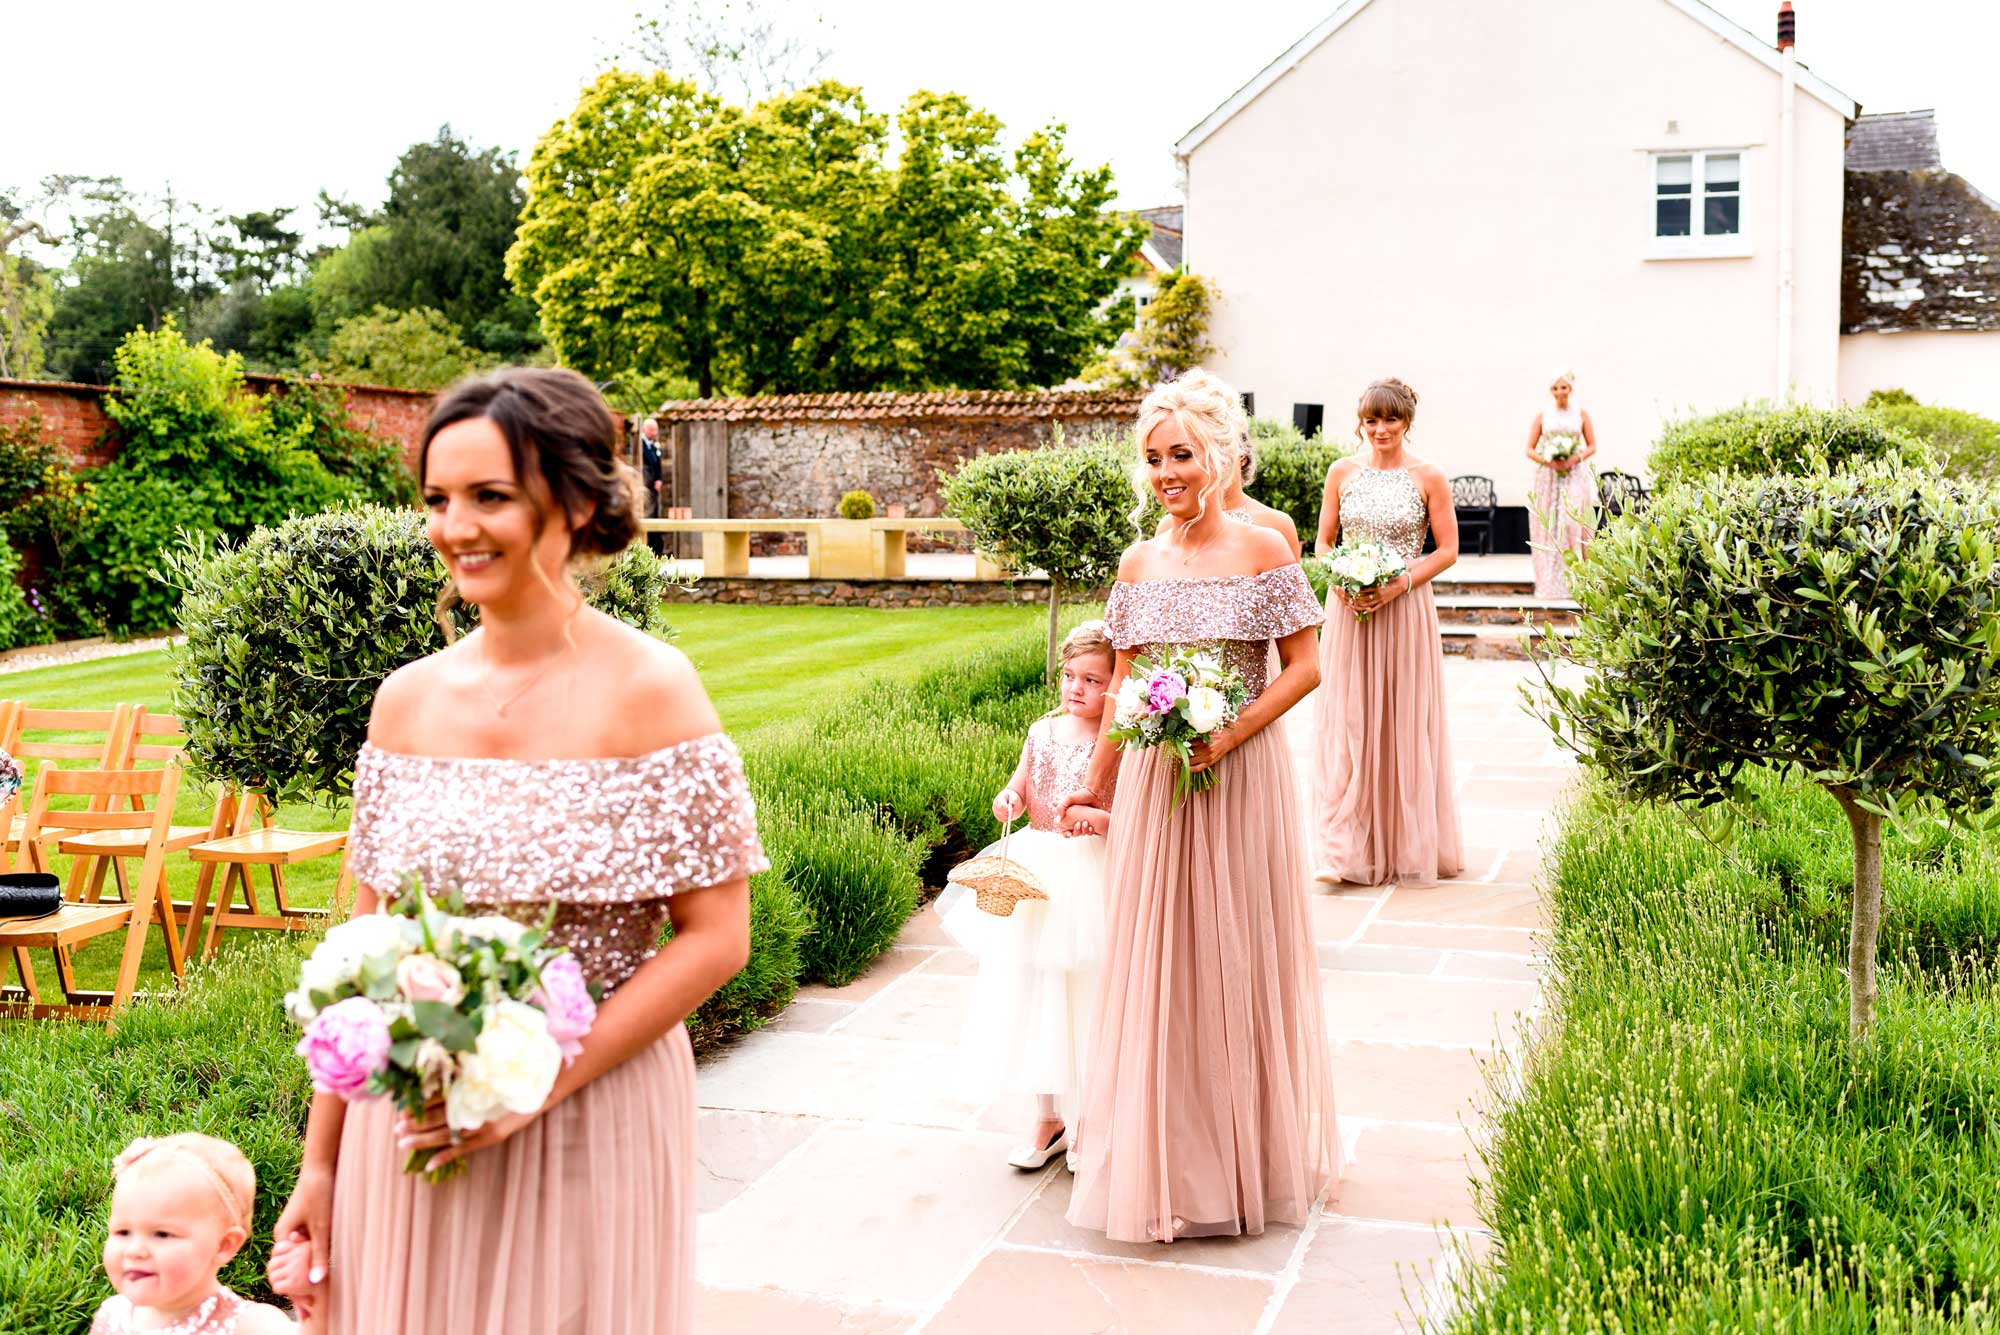 Bridesmaids and flowers girls walk down the aisle of Upton Barns Walled Garden